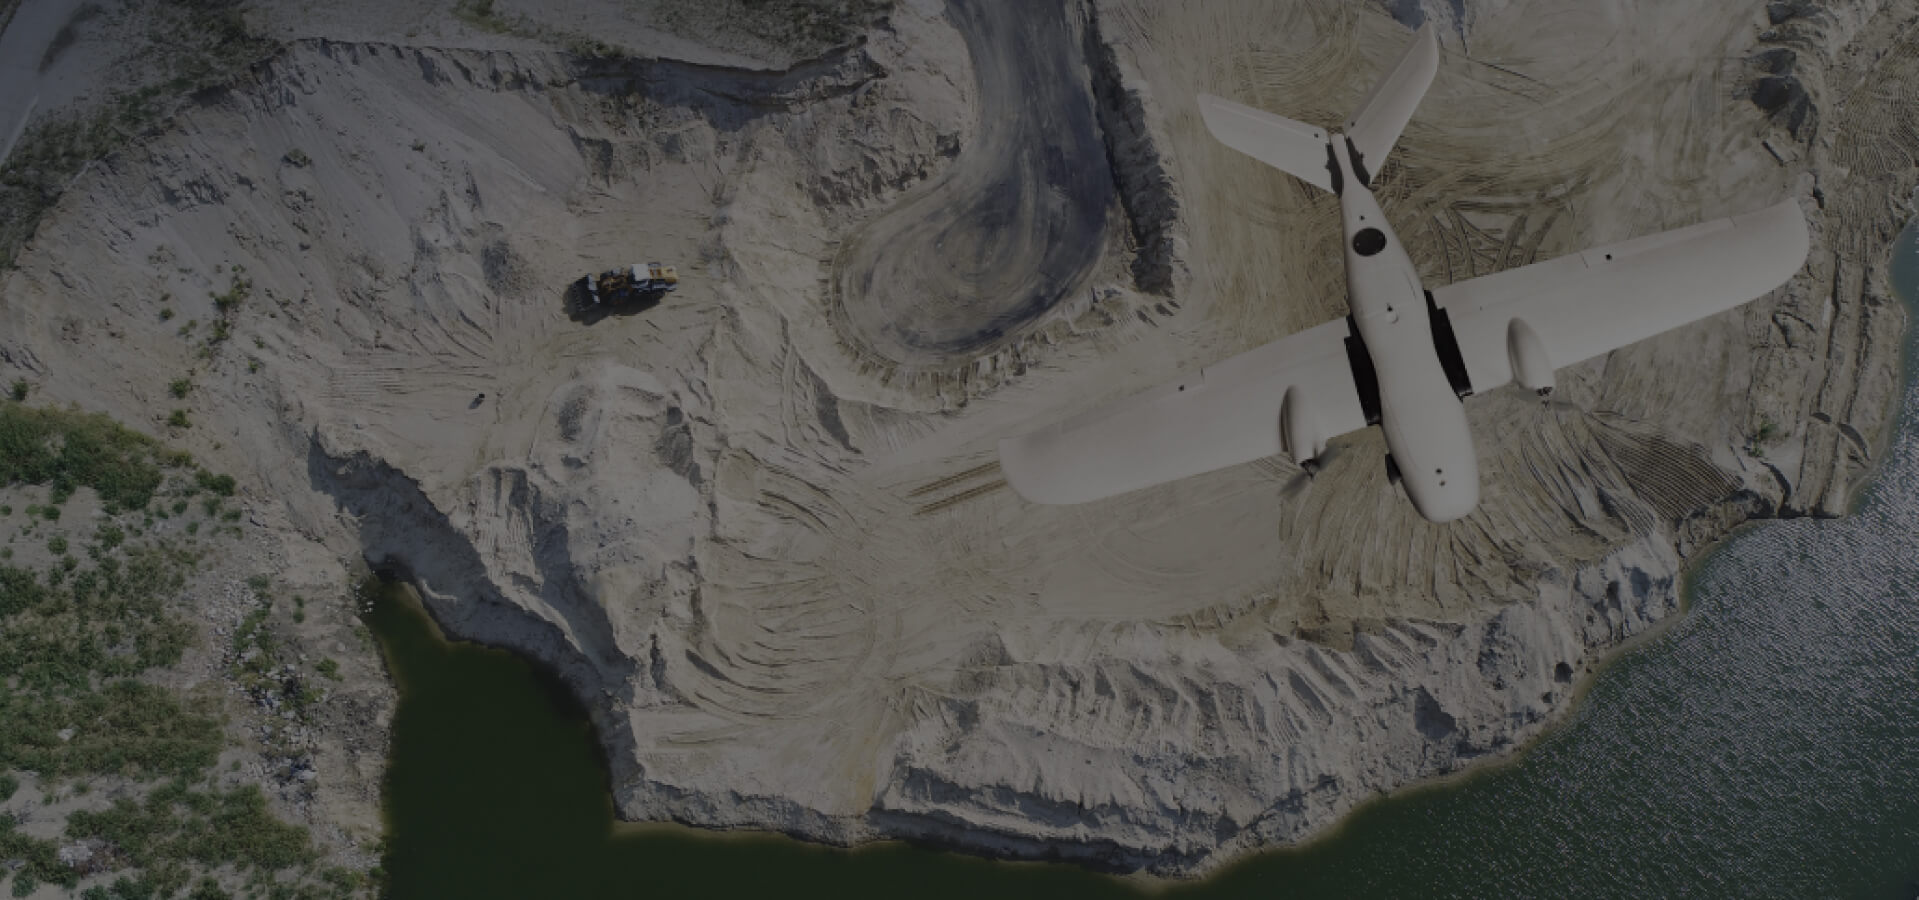 unmanned aerial vehicle over an opencast mine